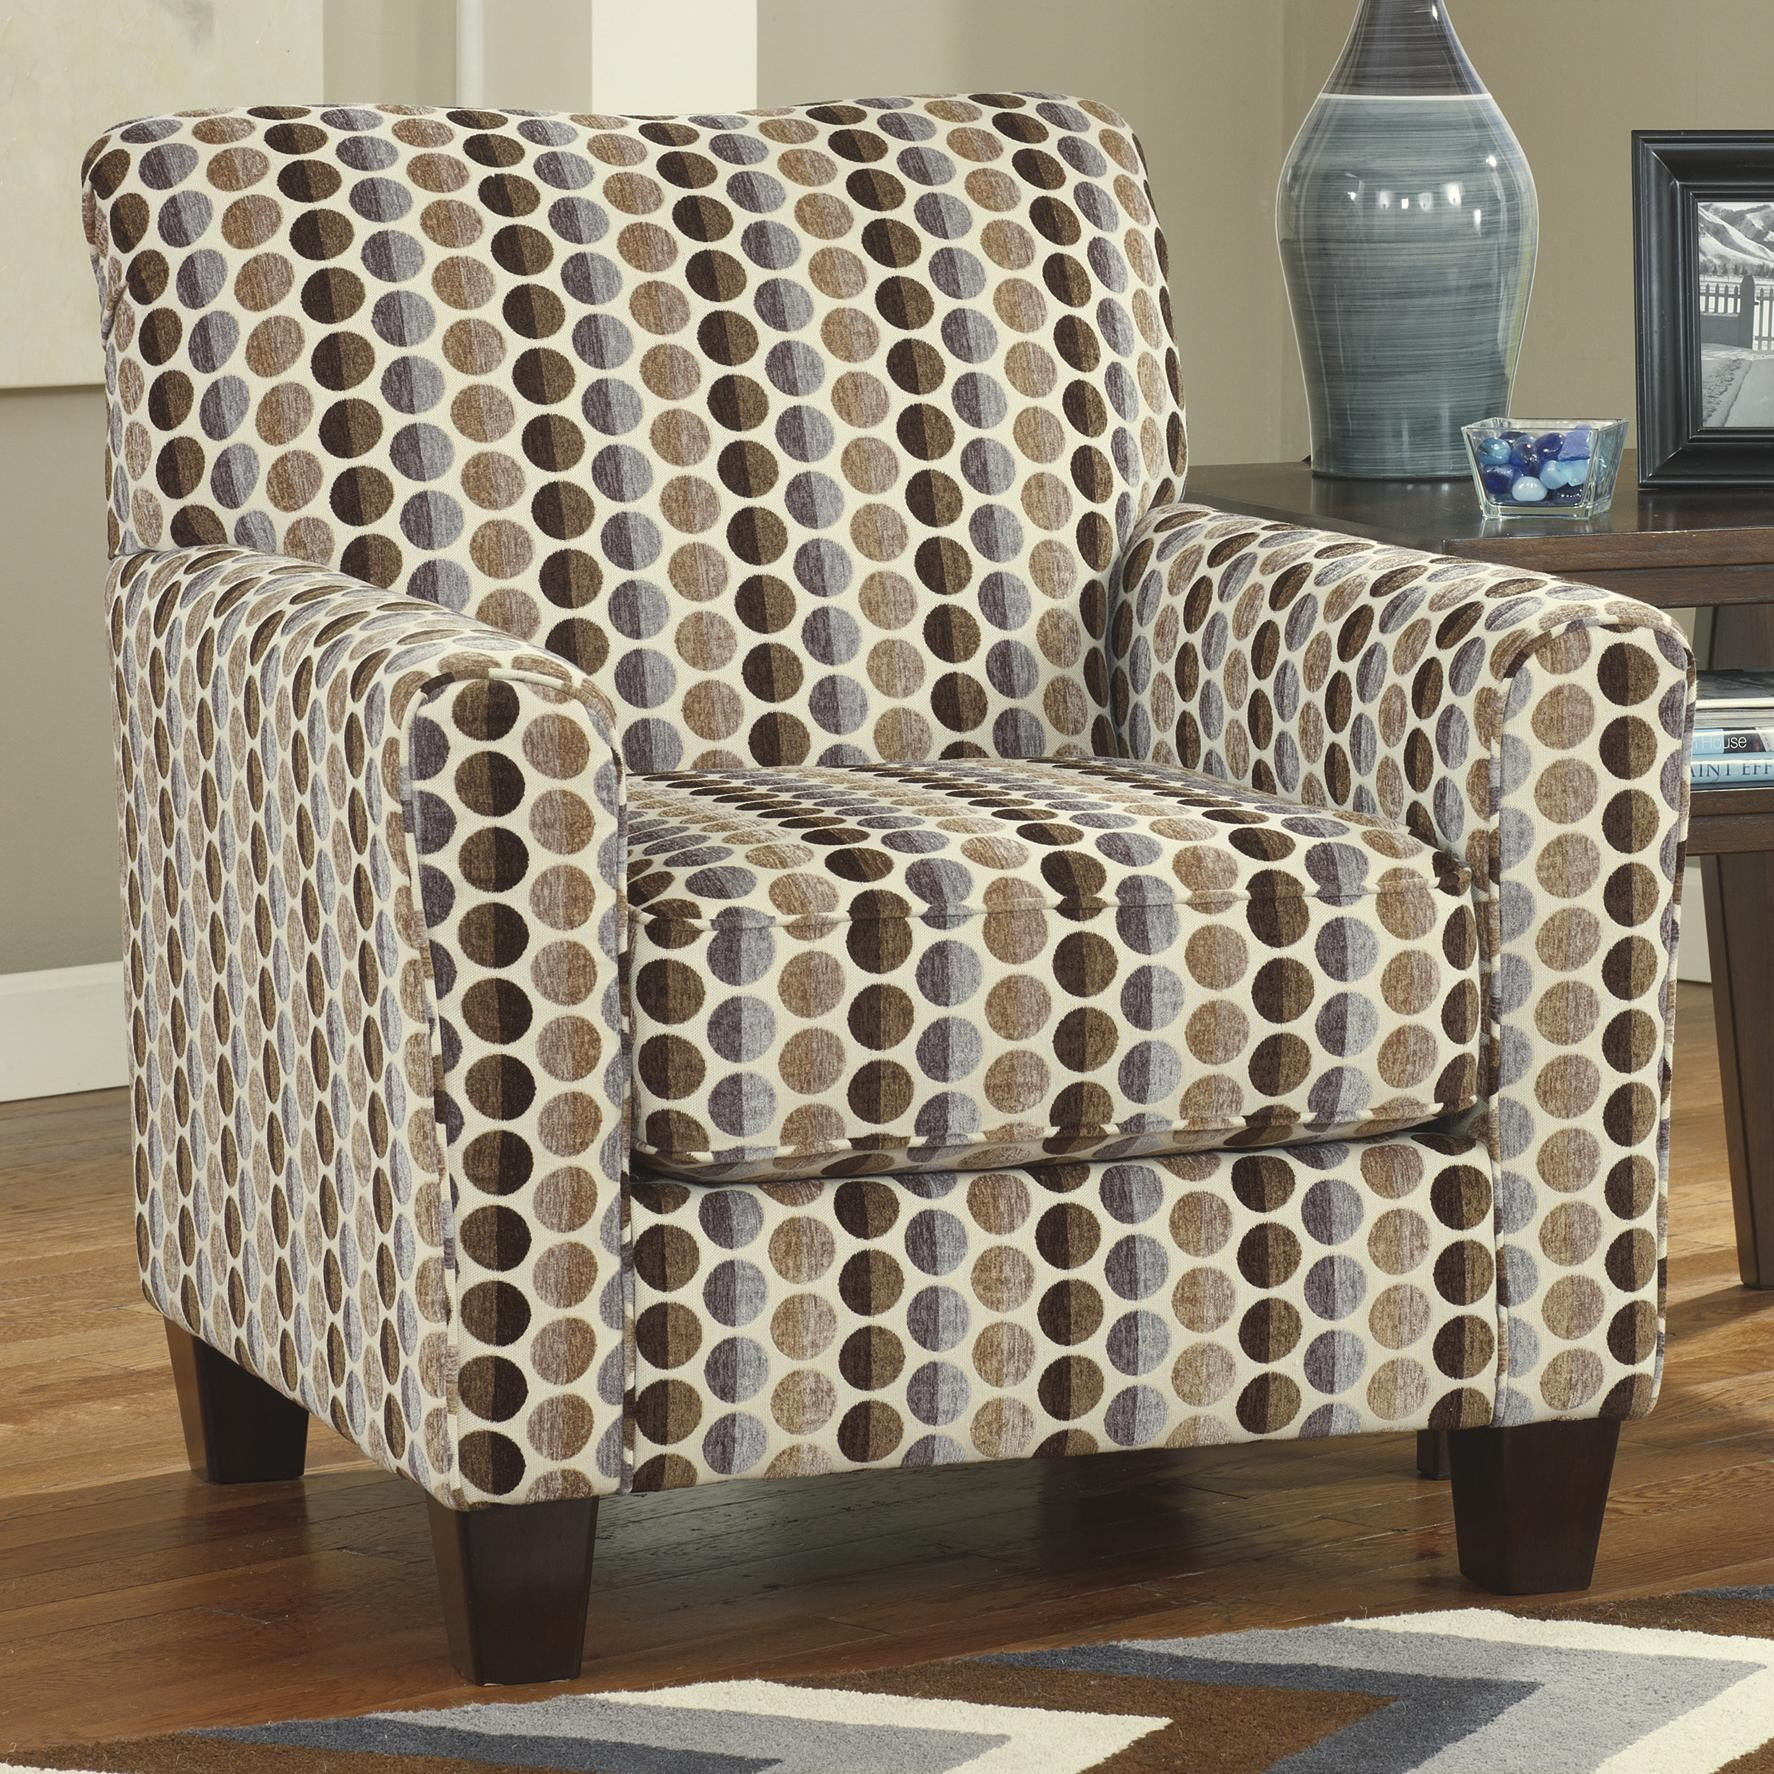 Charmant Ashley Furniture Geordie Contemporary Accent Chair With Circle Print